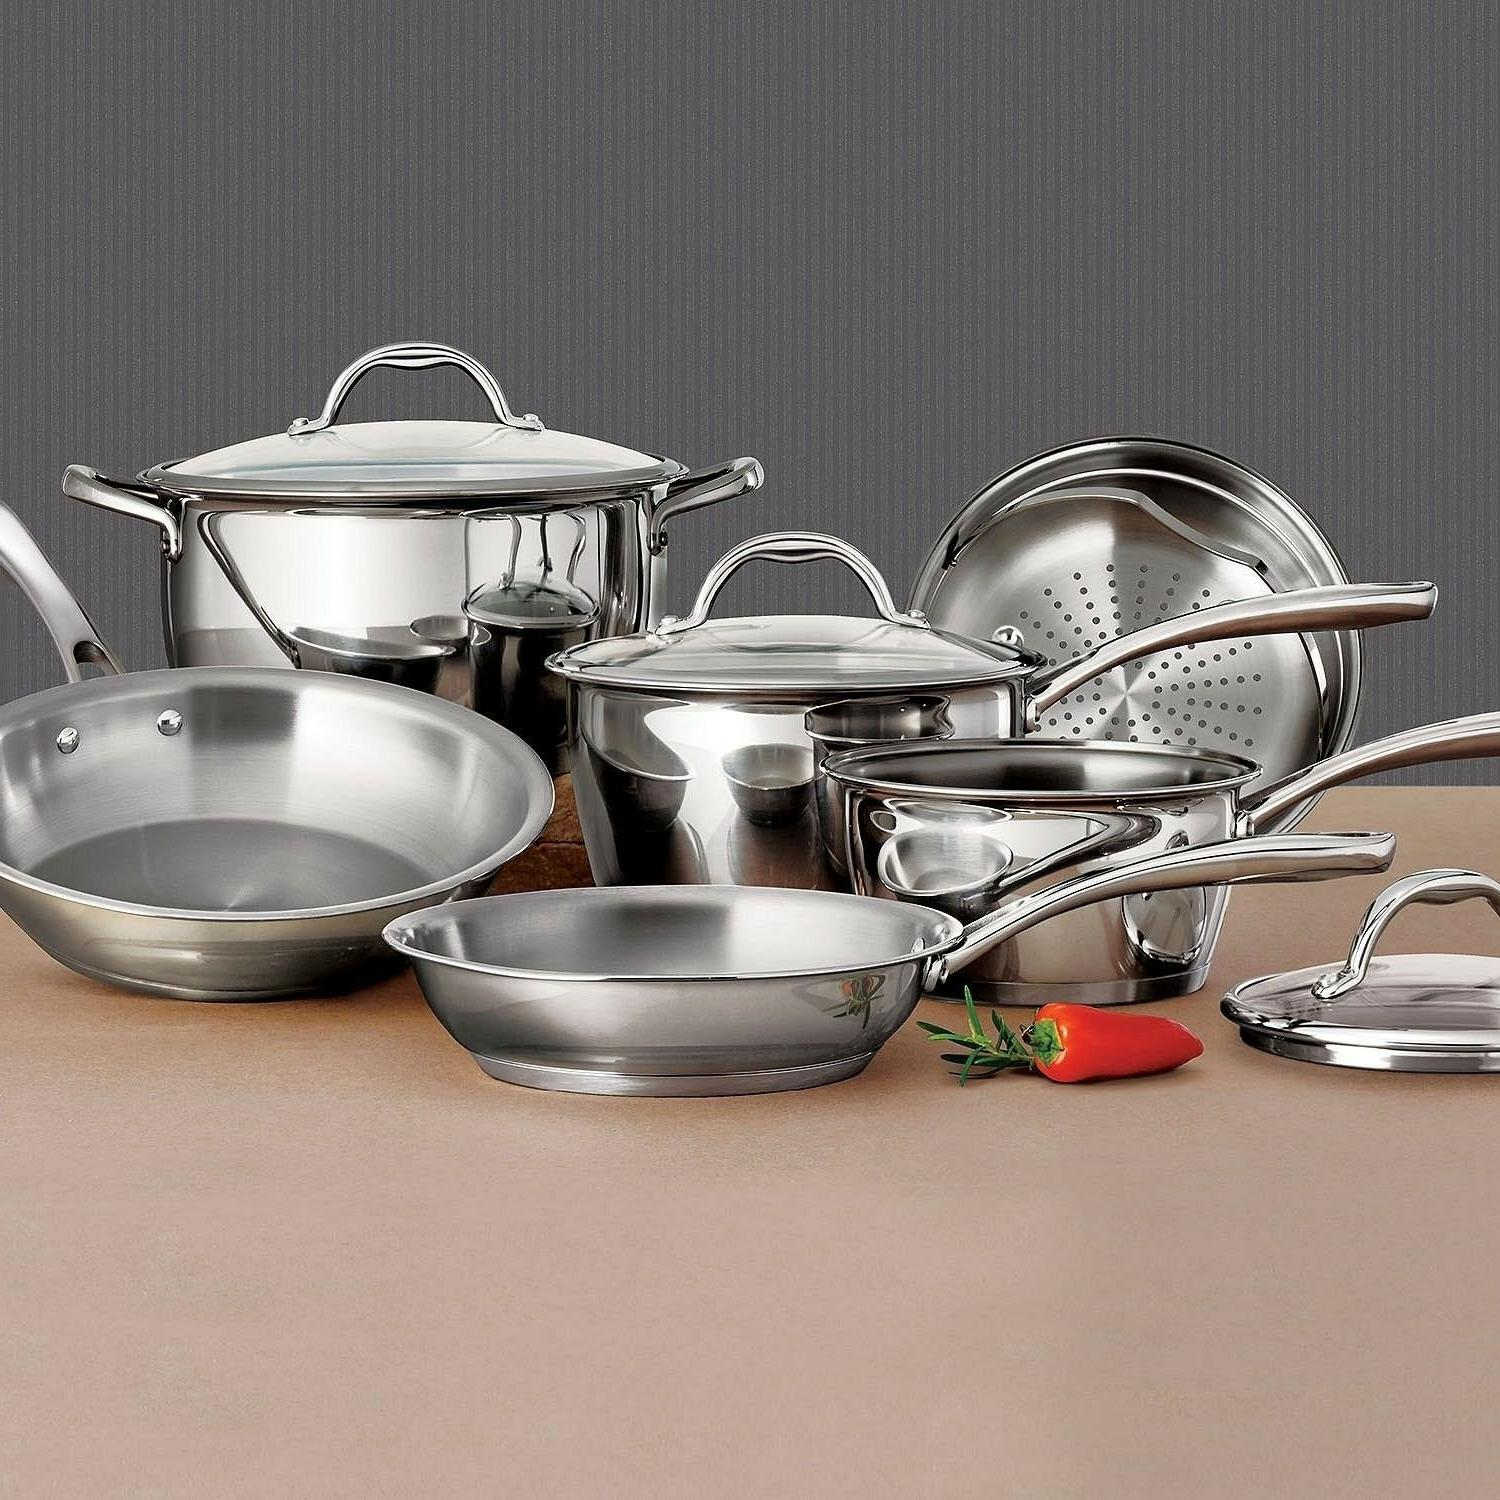 Tramontina 9-Piece Stainless Steel Tri-Ply Base Set